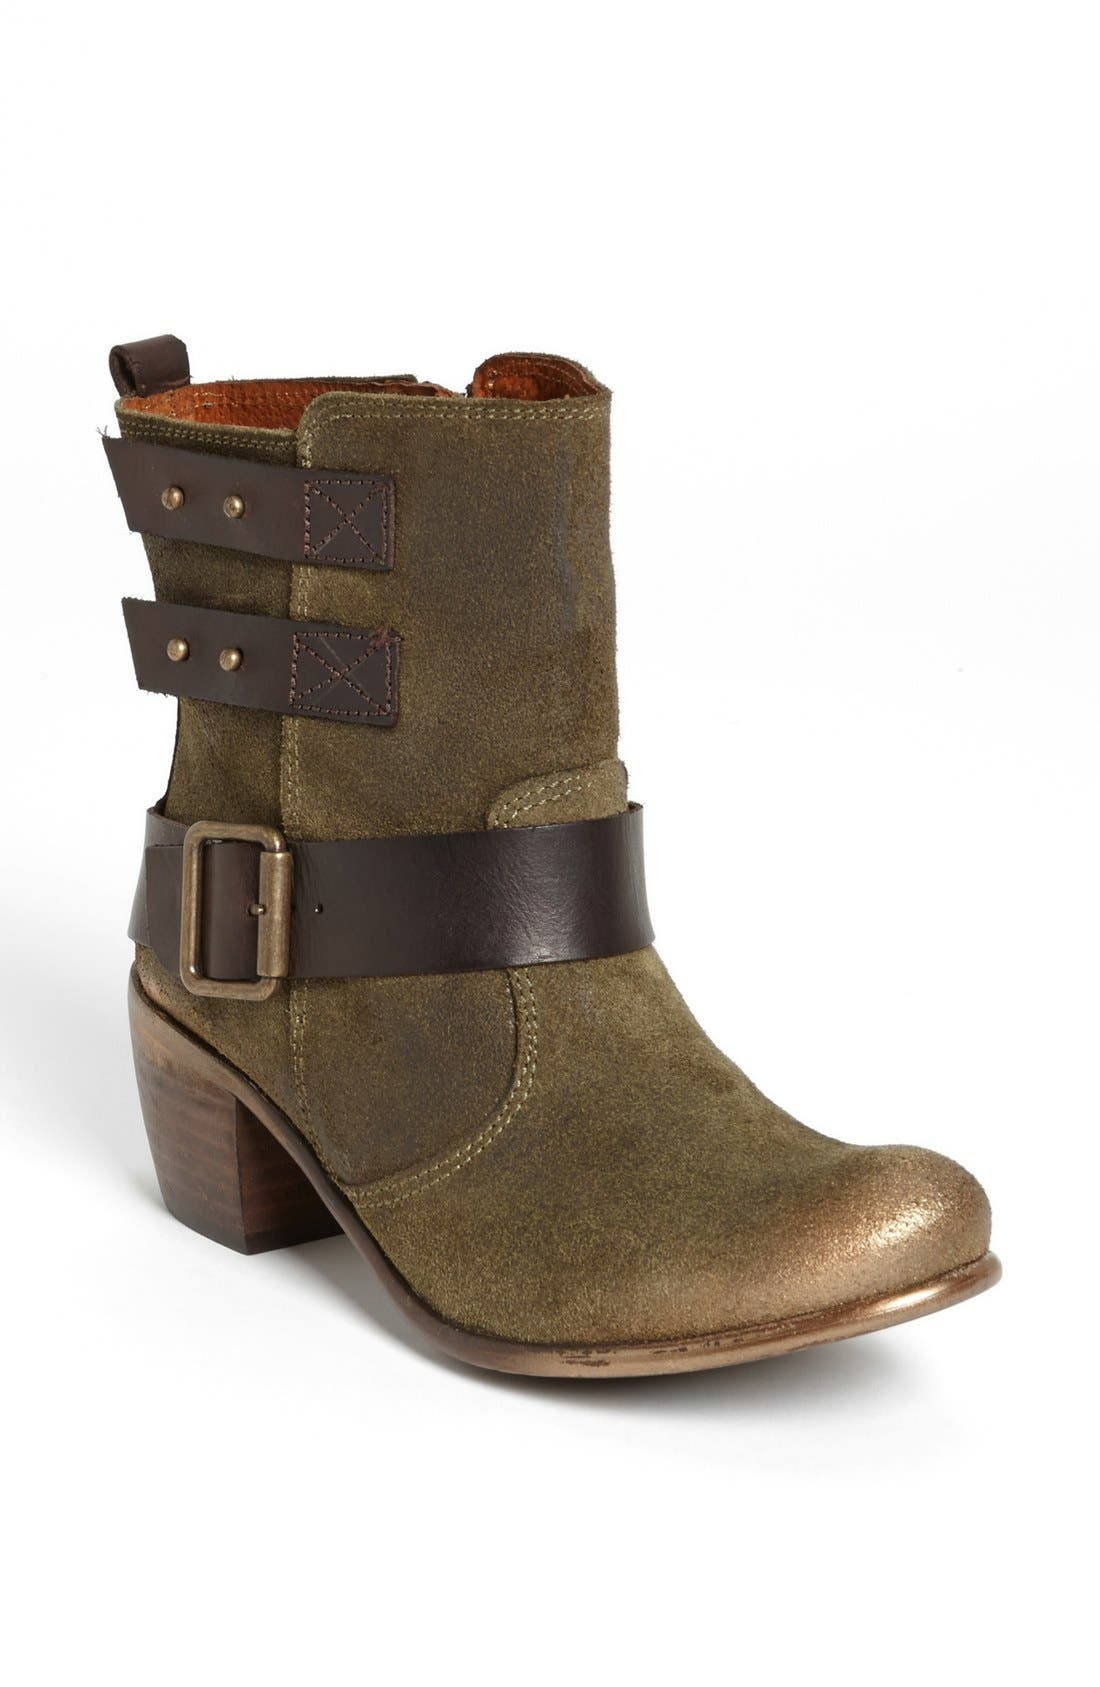 Main Image - SIXTYSEVEN 'Baxter' Bootie